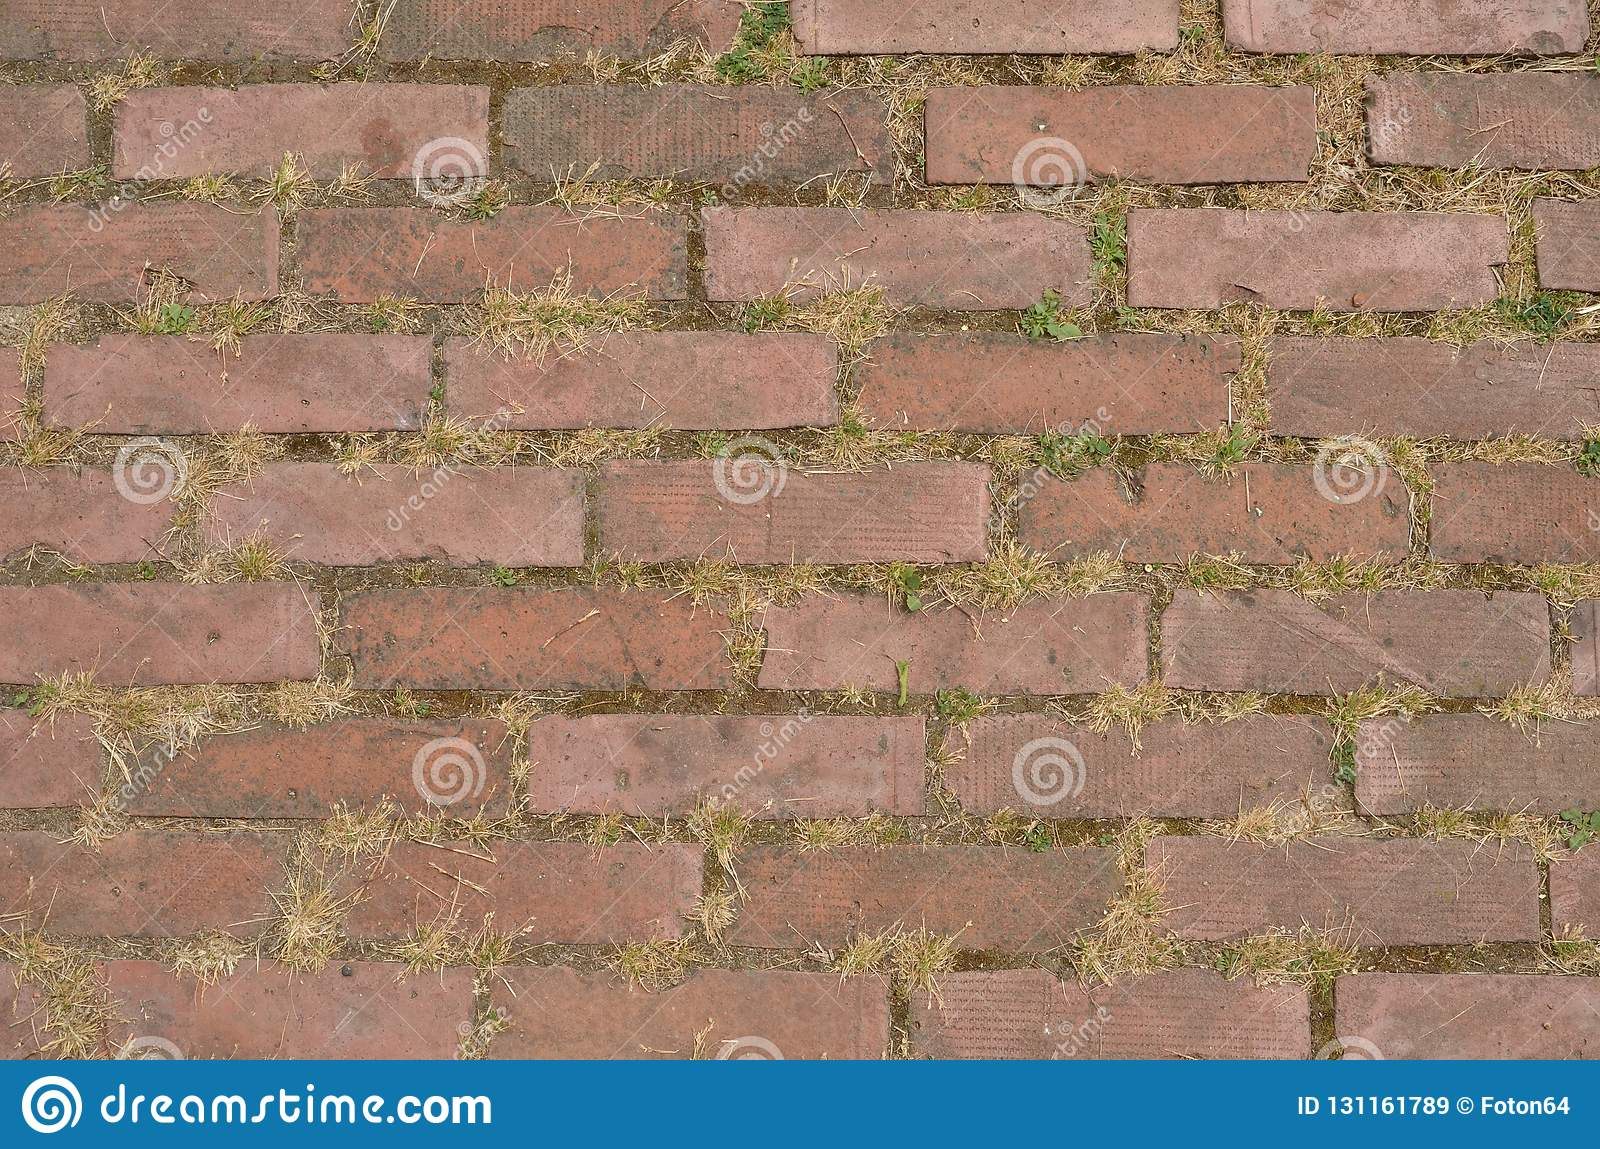 Sidewalk pavement made of bricks